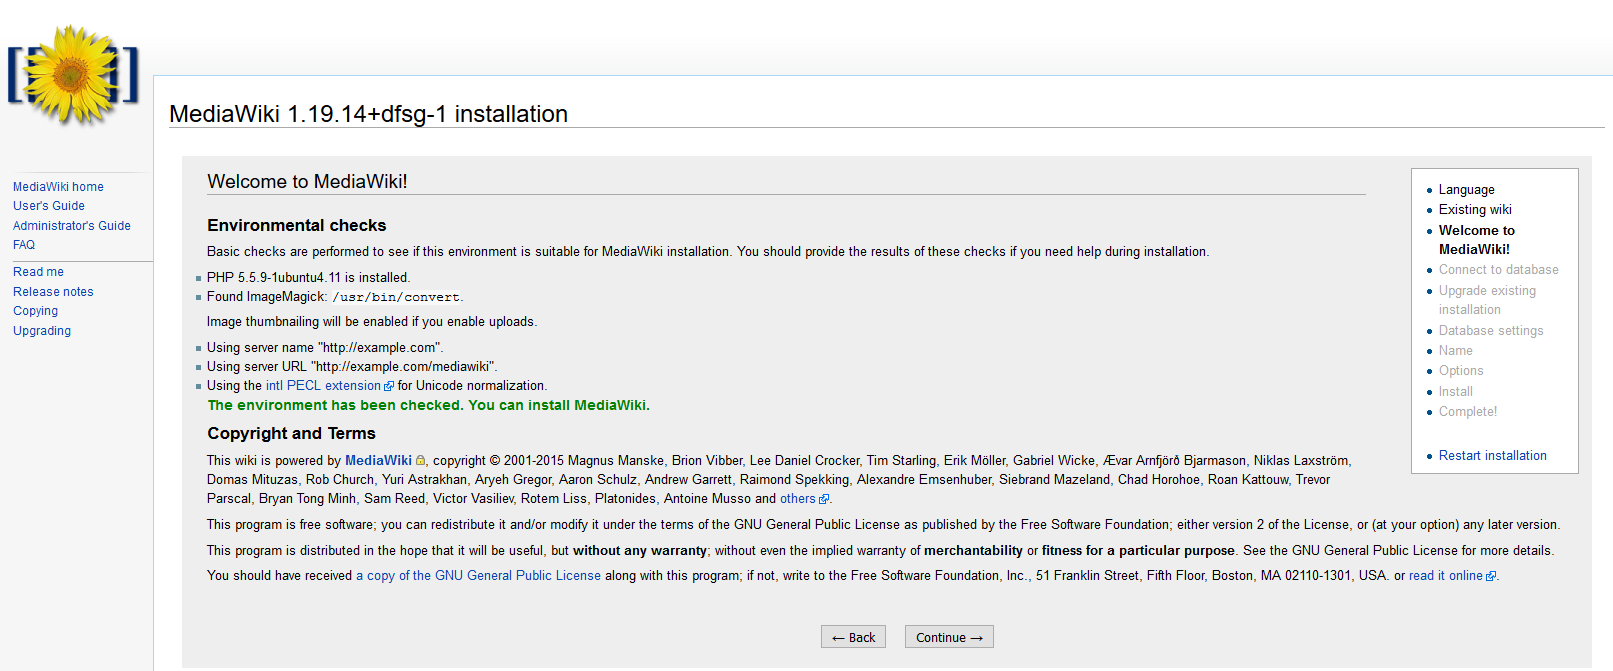 MediaWiki installation: environment checks complete